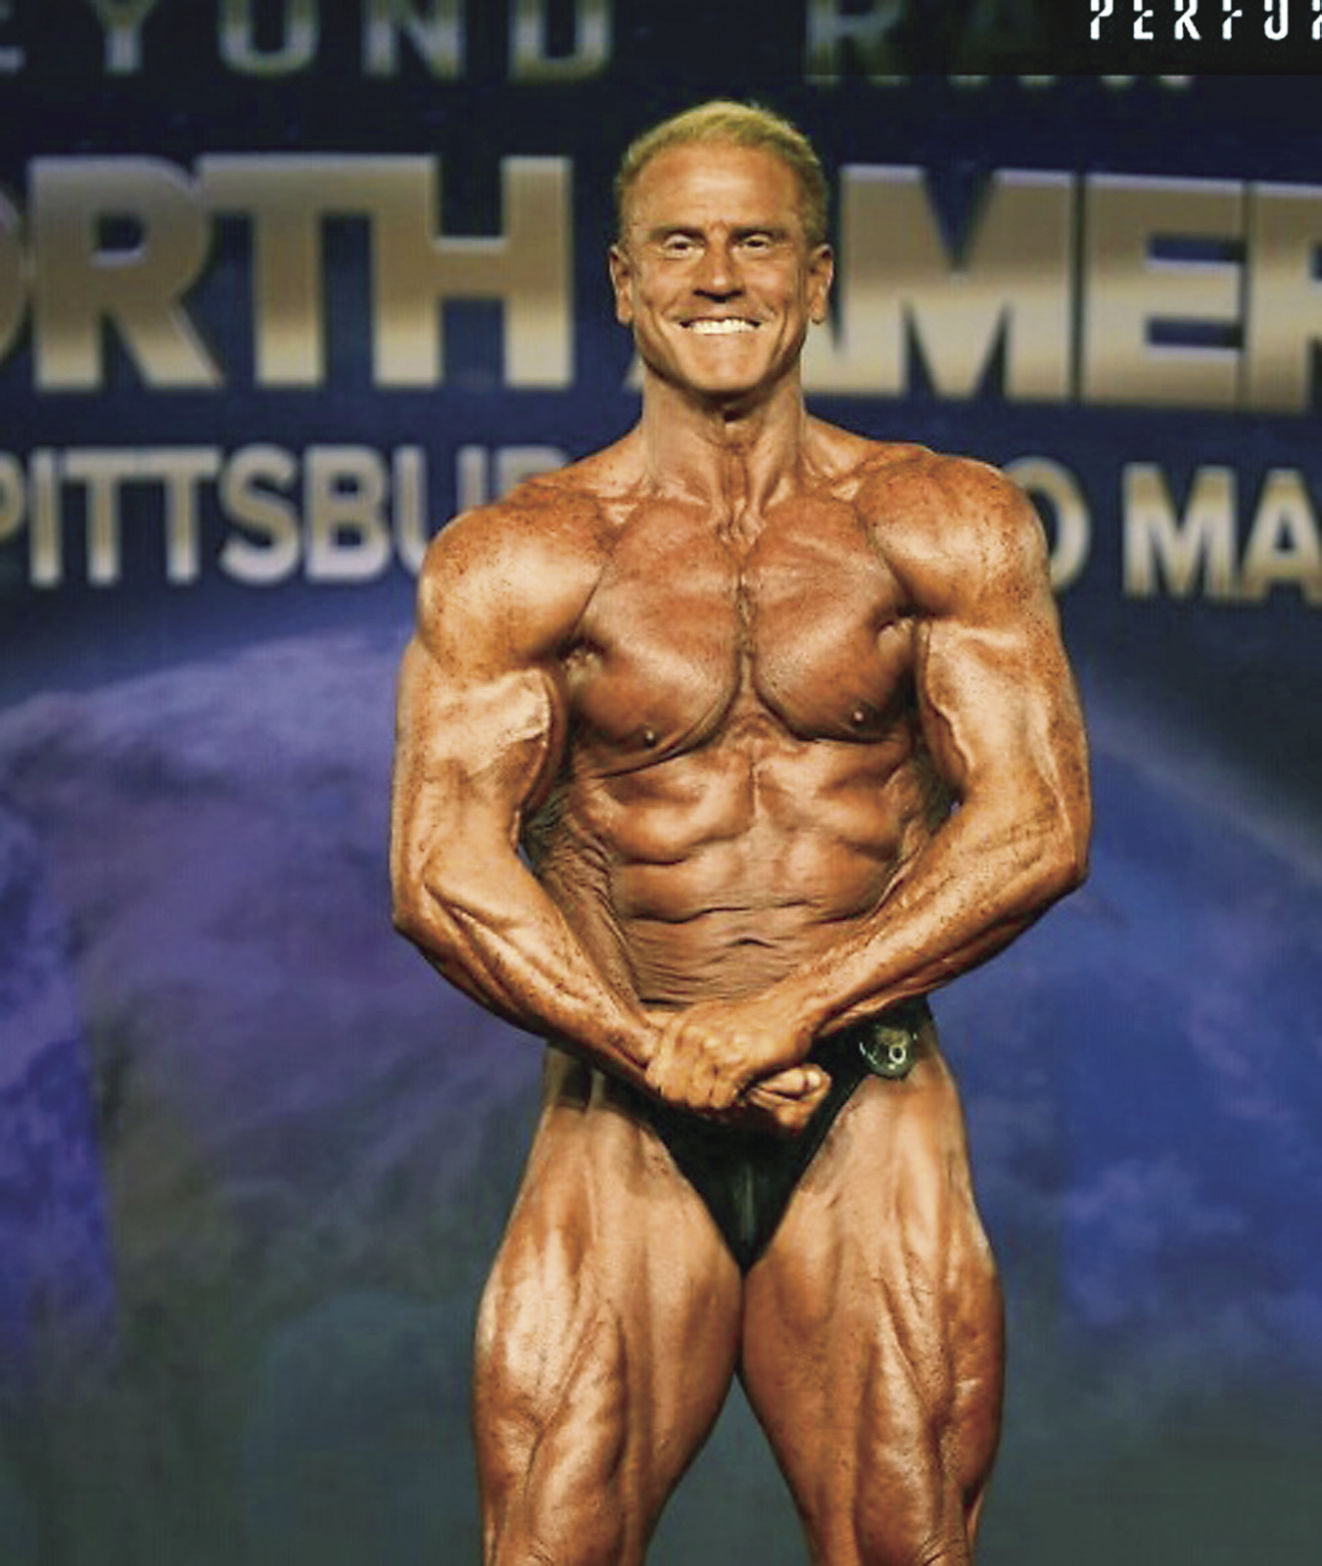 Daytona Bodybuilder Going Strong At 60 News